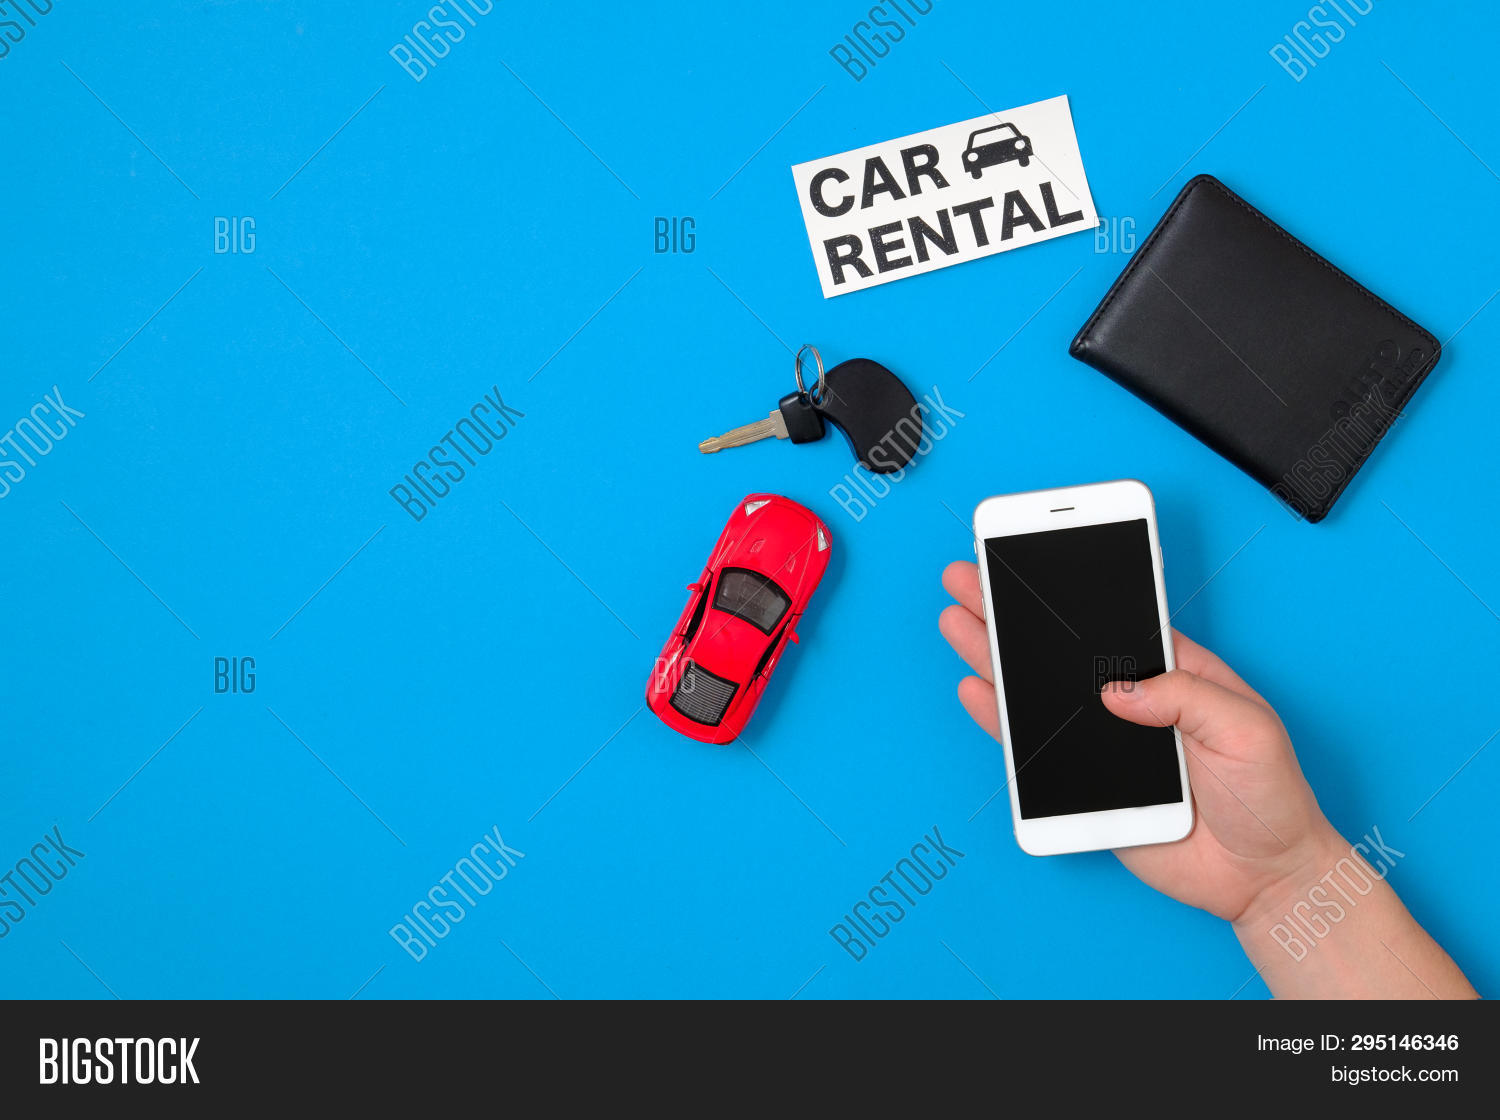 Car Rental App Concept Image & Photo (Free Trial) | Bigstock